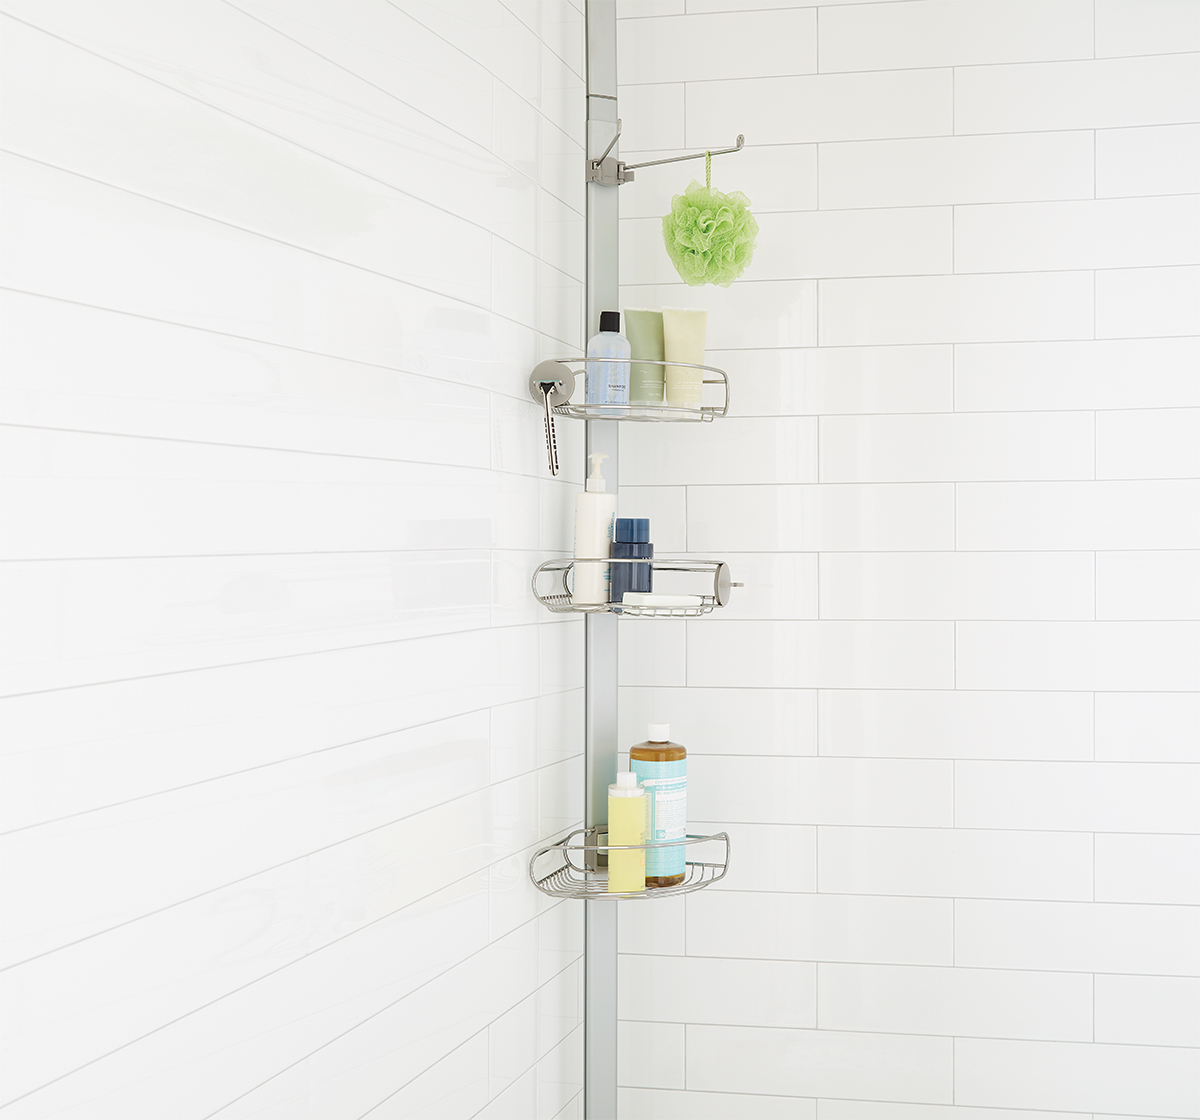 Tension Pole Shower Caddy - simplehuman Stainless Steel Tension Pole ...